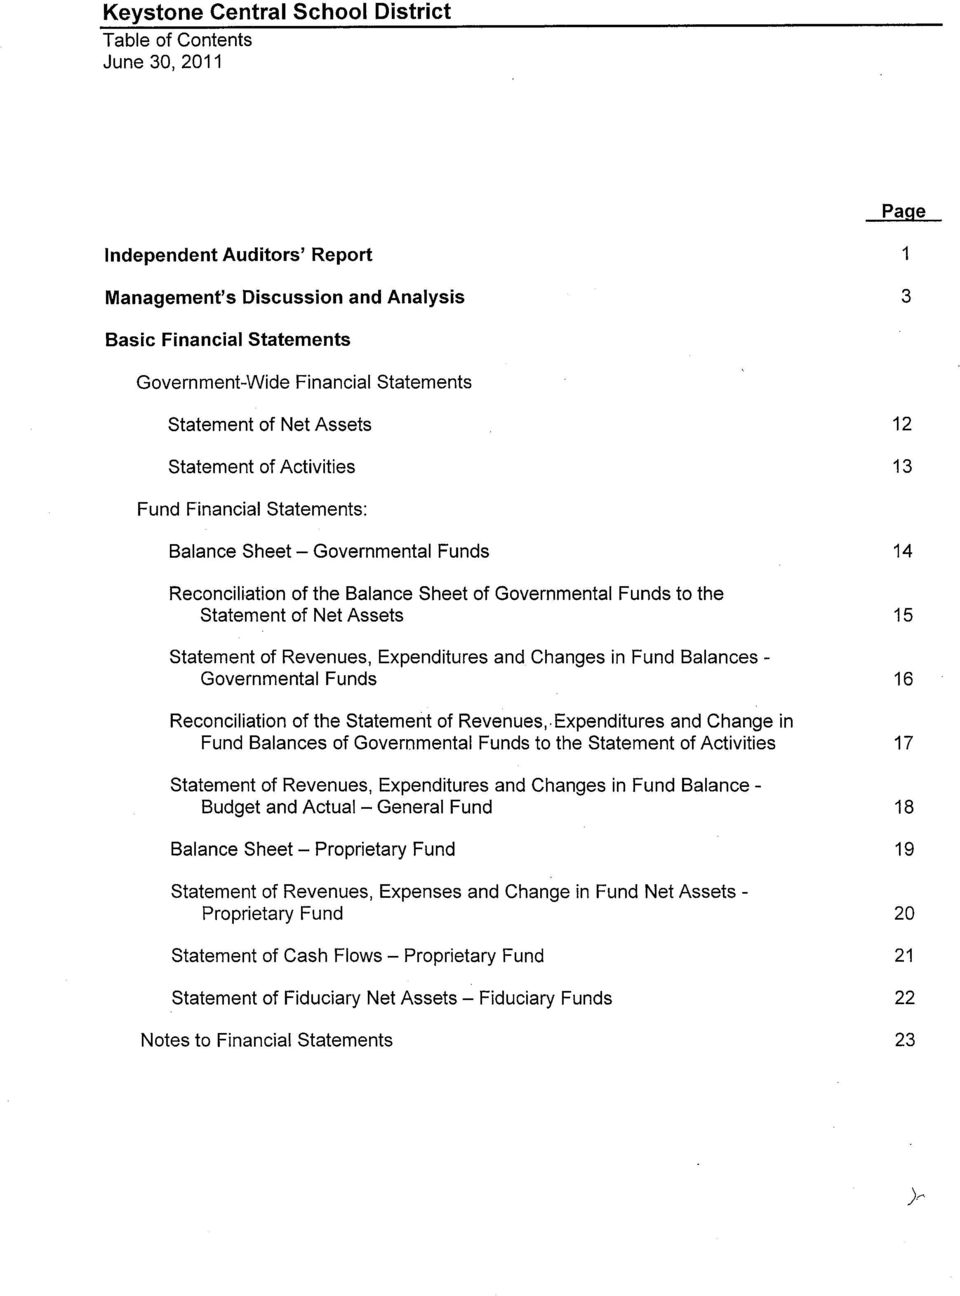 Expenditures and Changes in Fund Balances - Governmental Funds Reconciliation of the Statement of Revenues,.